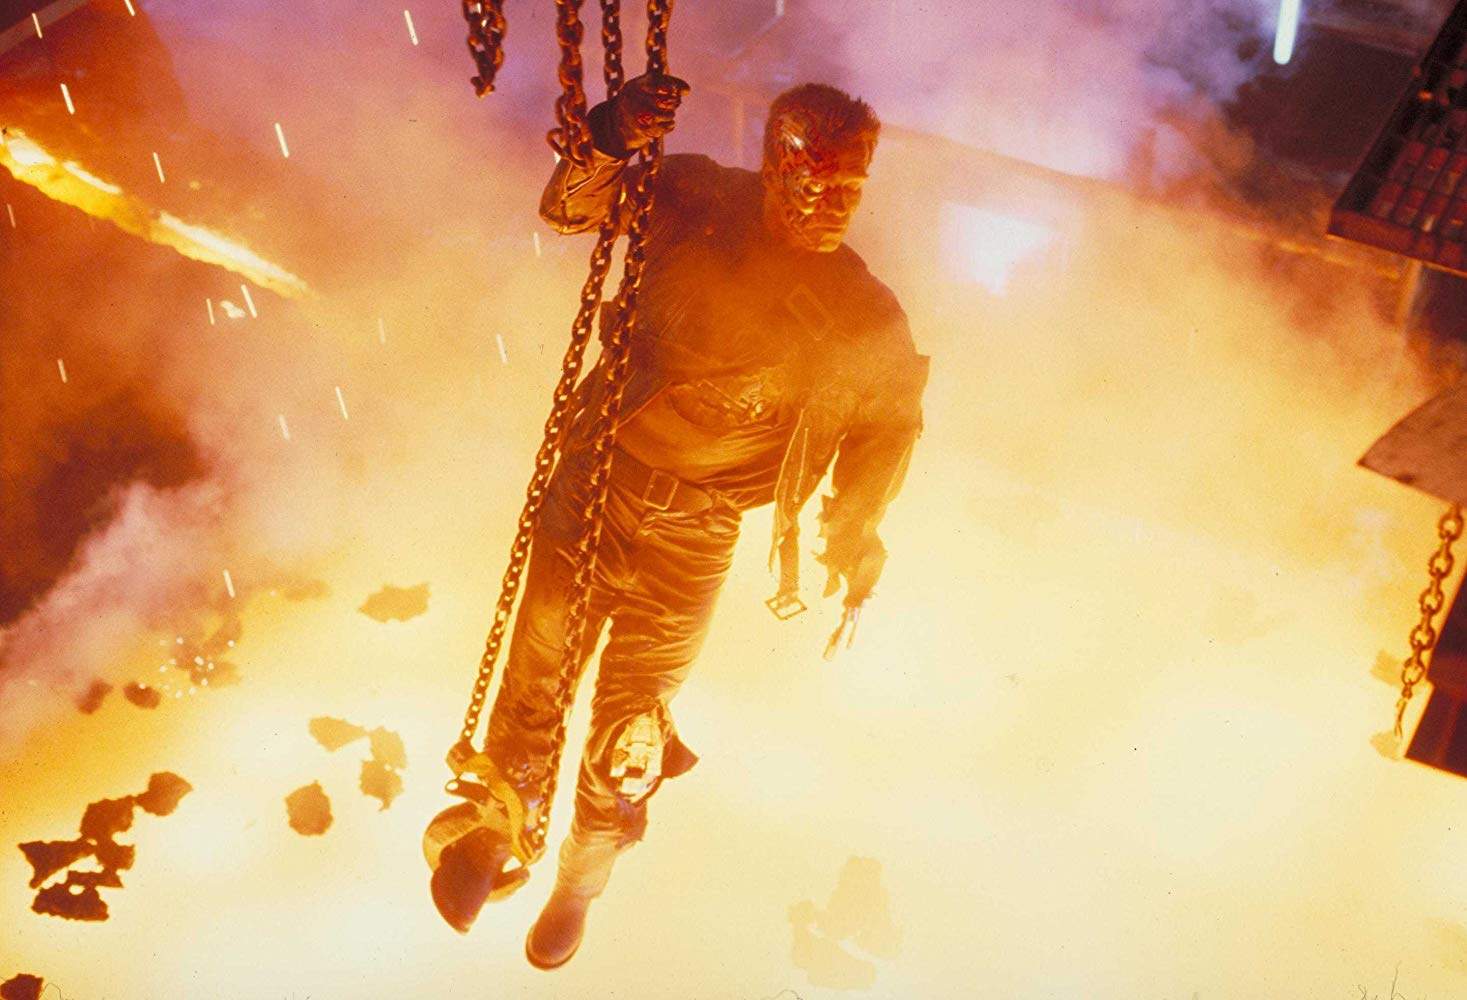 Terminator 2 Judgment Day iconic pool of molten steel